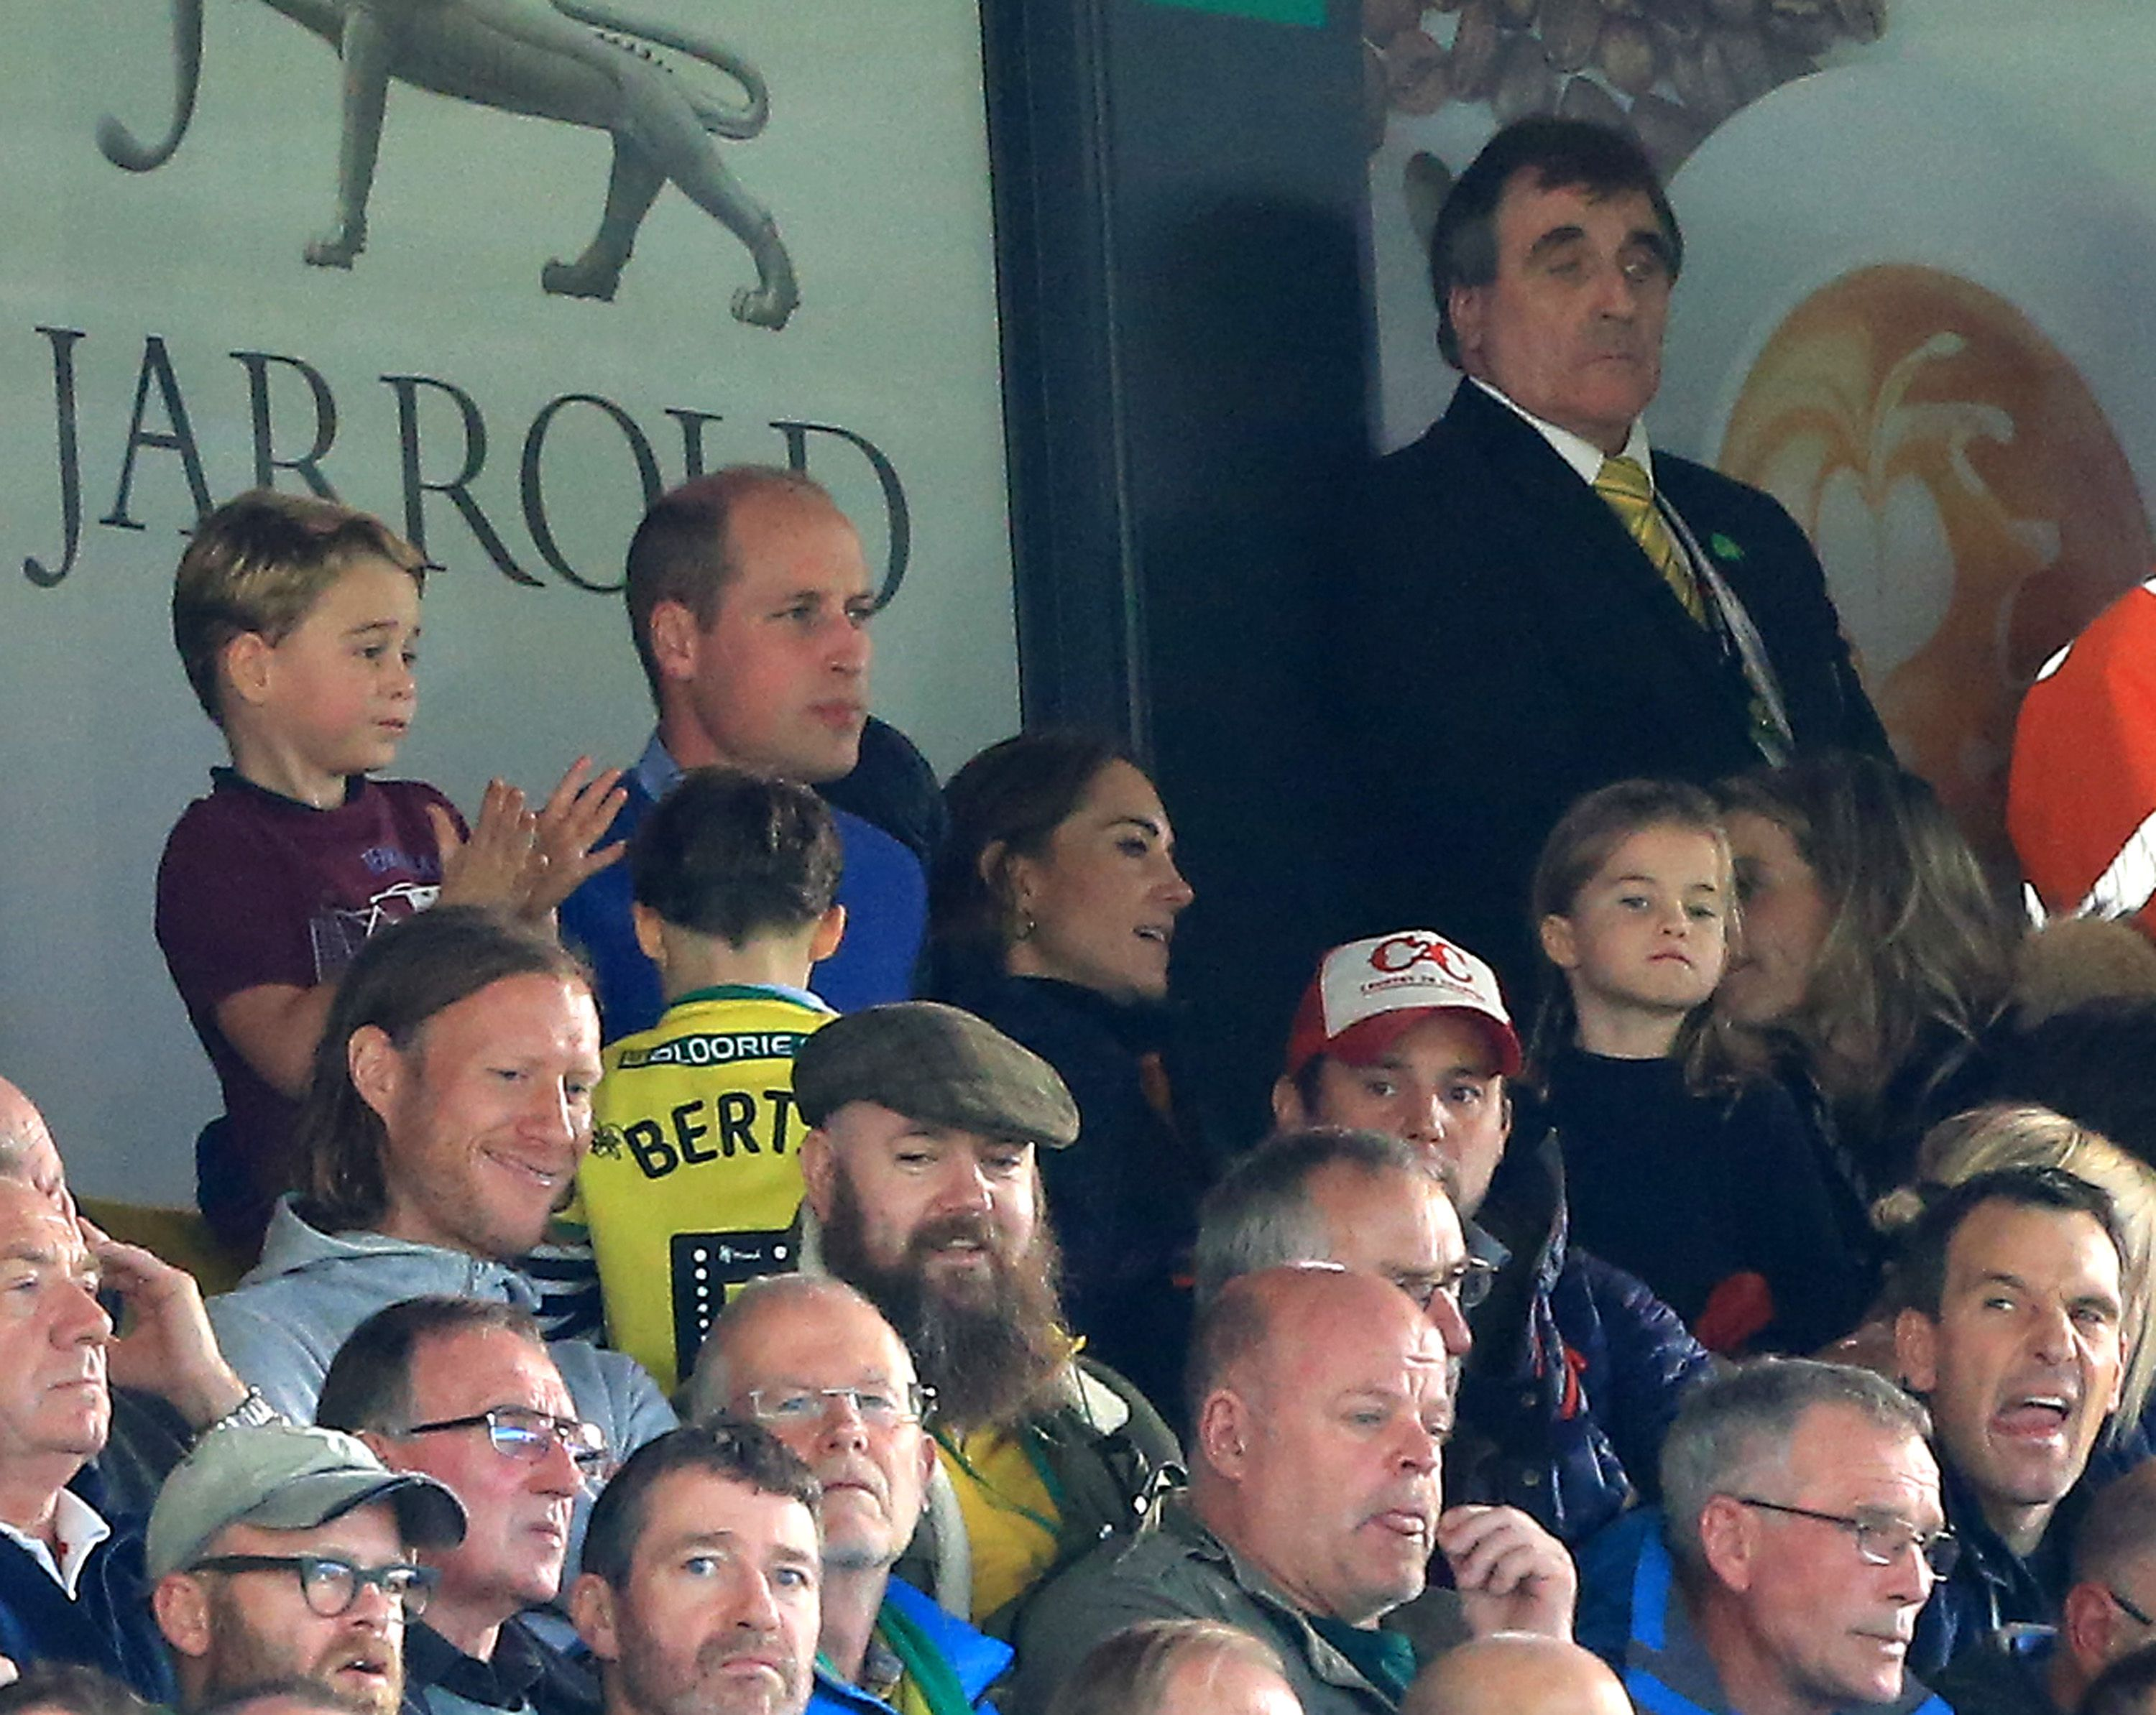 Prince George's excited cheering at Aston Villa football game goes viral